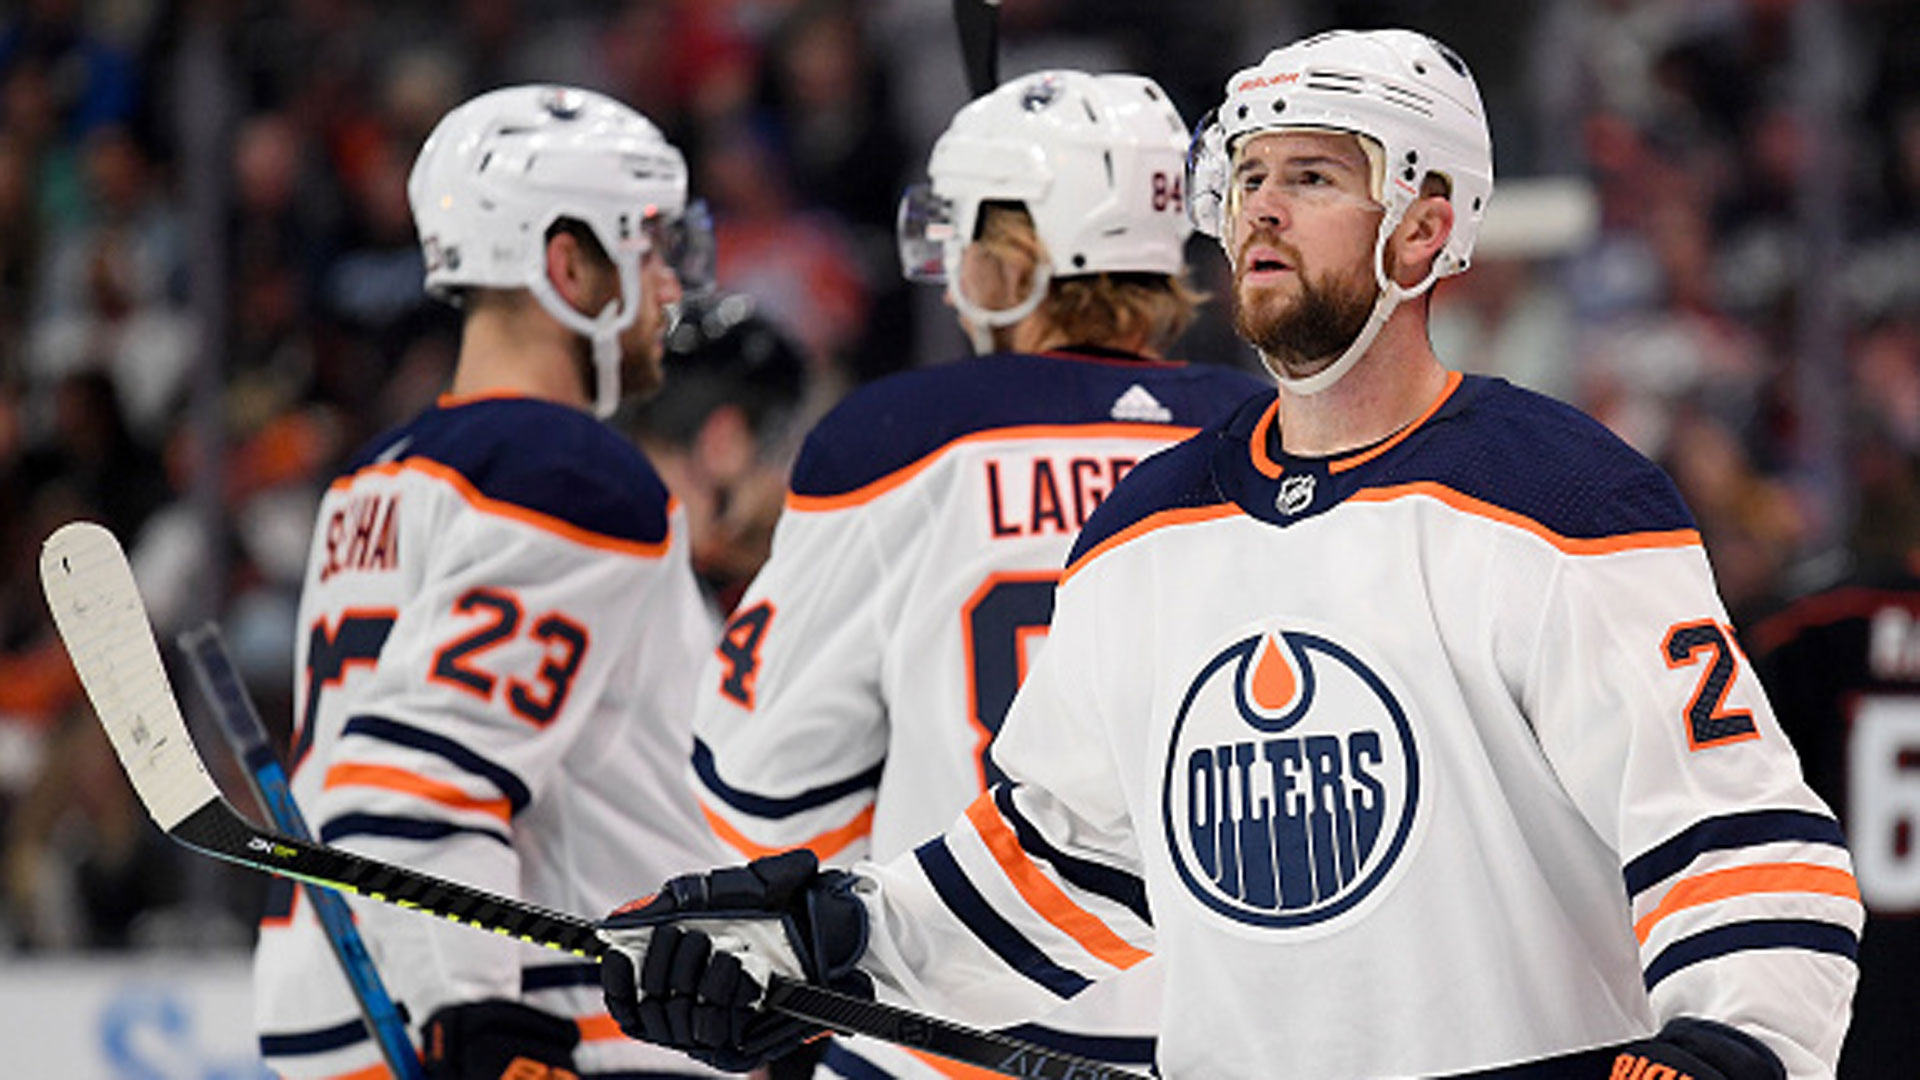 Newly-acquired Green among crowded list of injured Oilers